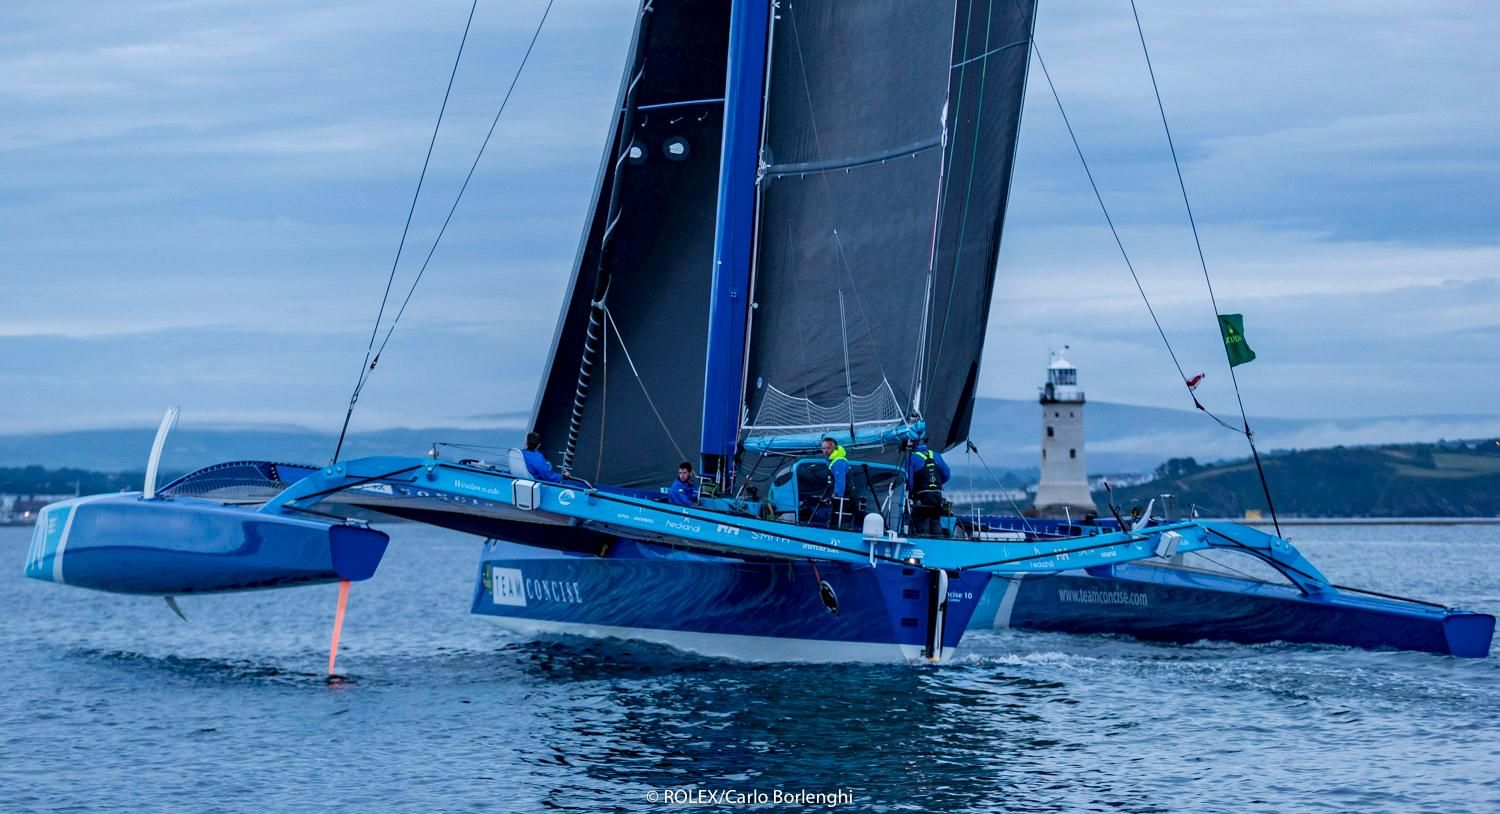 MOD70, Concise 10, cross the finish line of the Rolex Fastnet Race in Plymouth. Credit: ROLEX/Carlo Borlenghi